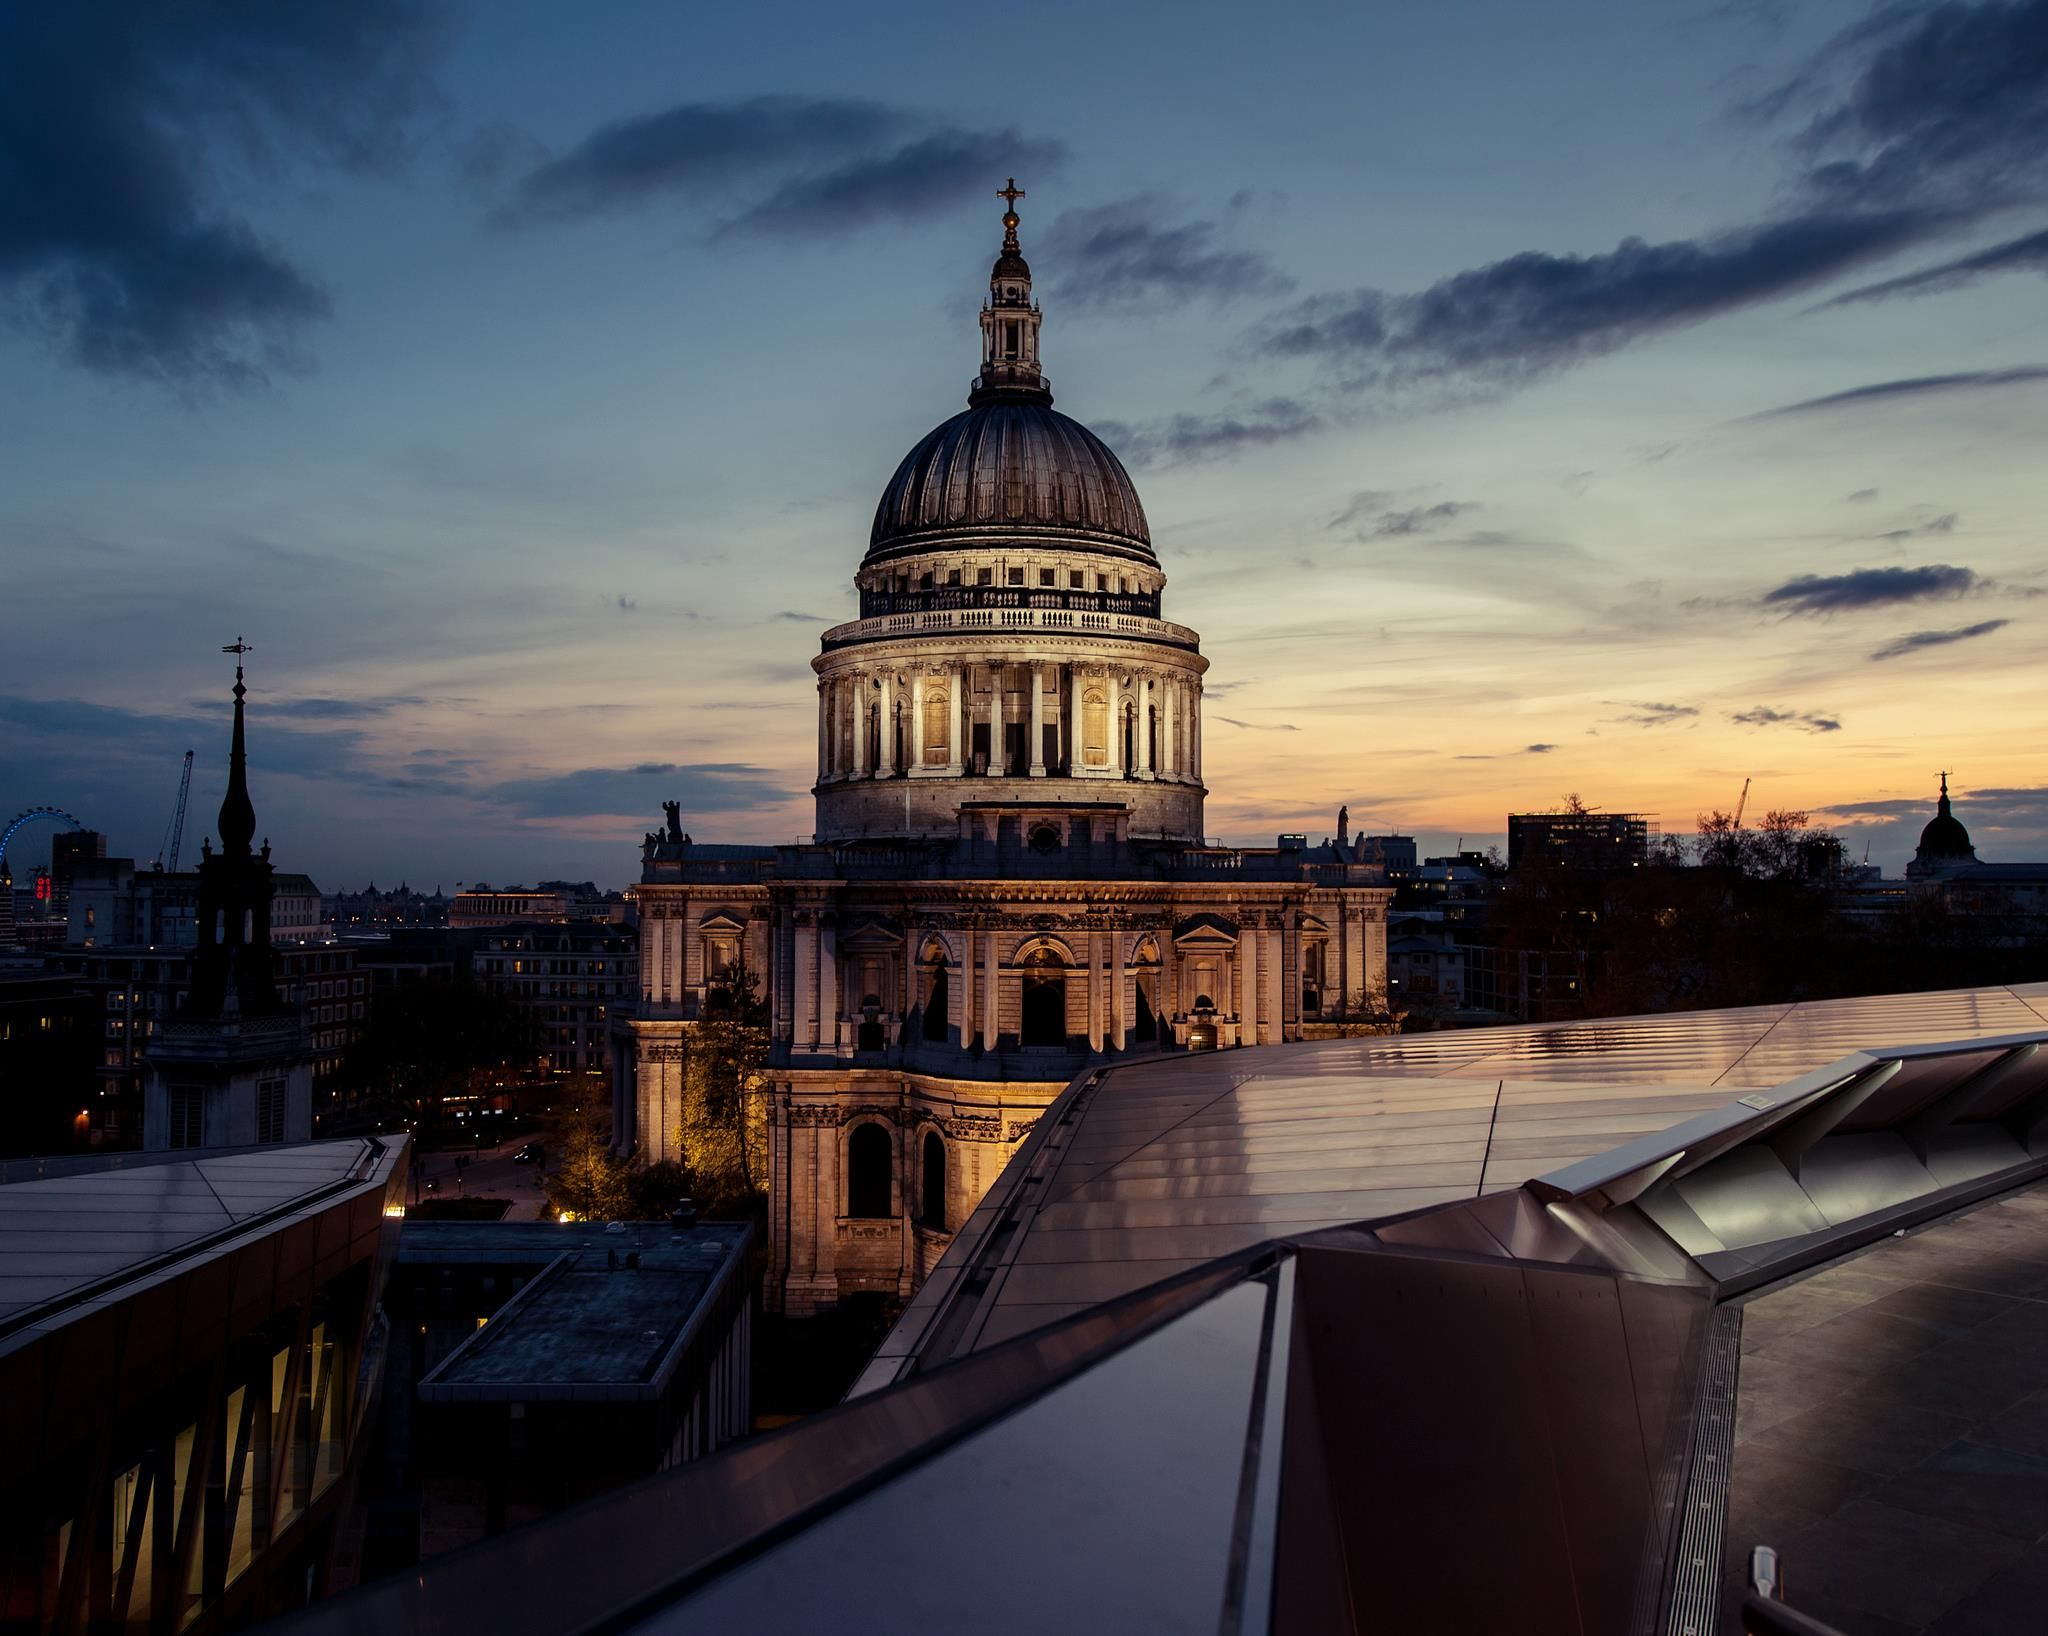 St Paul's Cathedral from the Madison - not a bad view for afterwork drinks!?